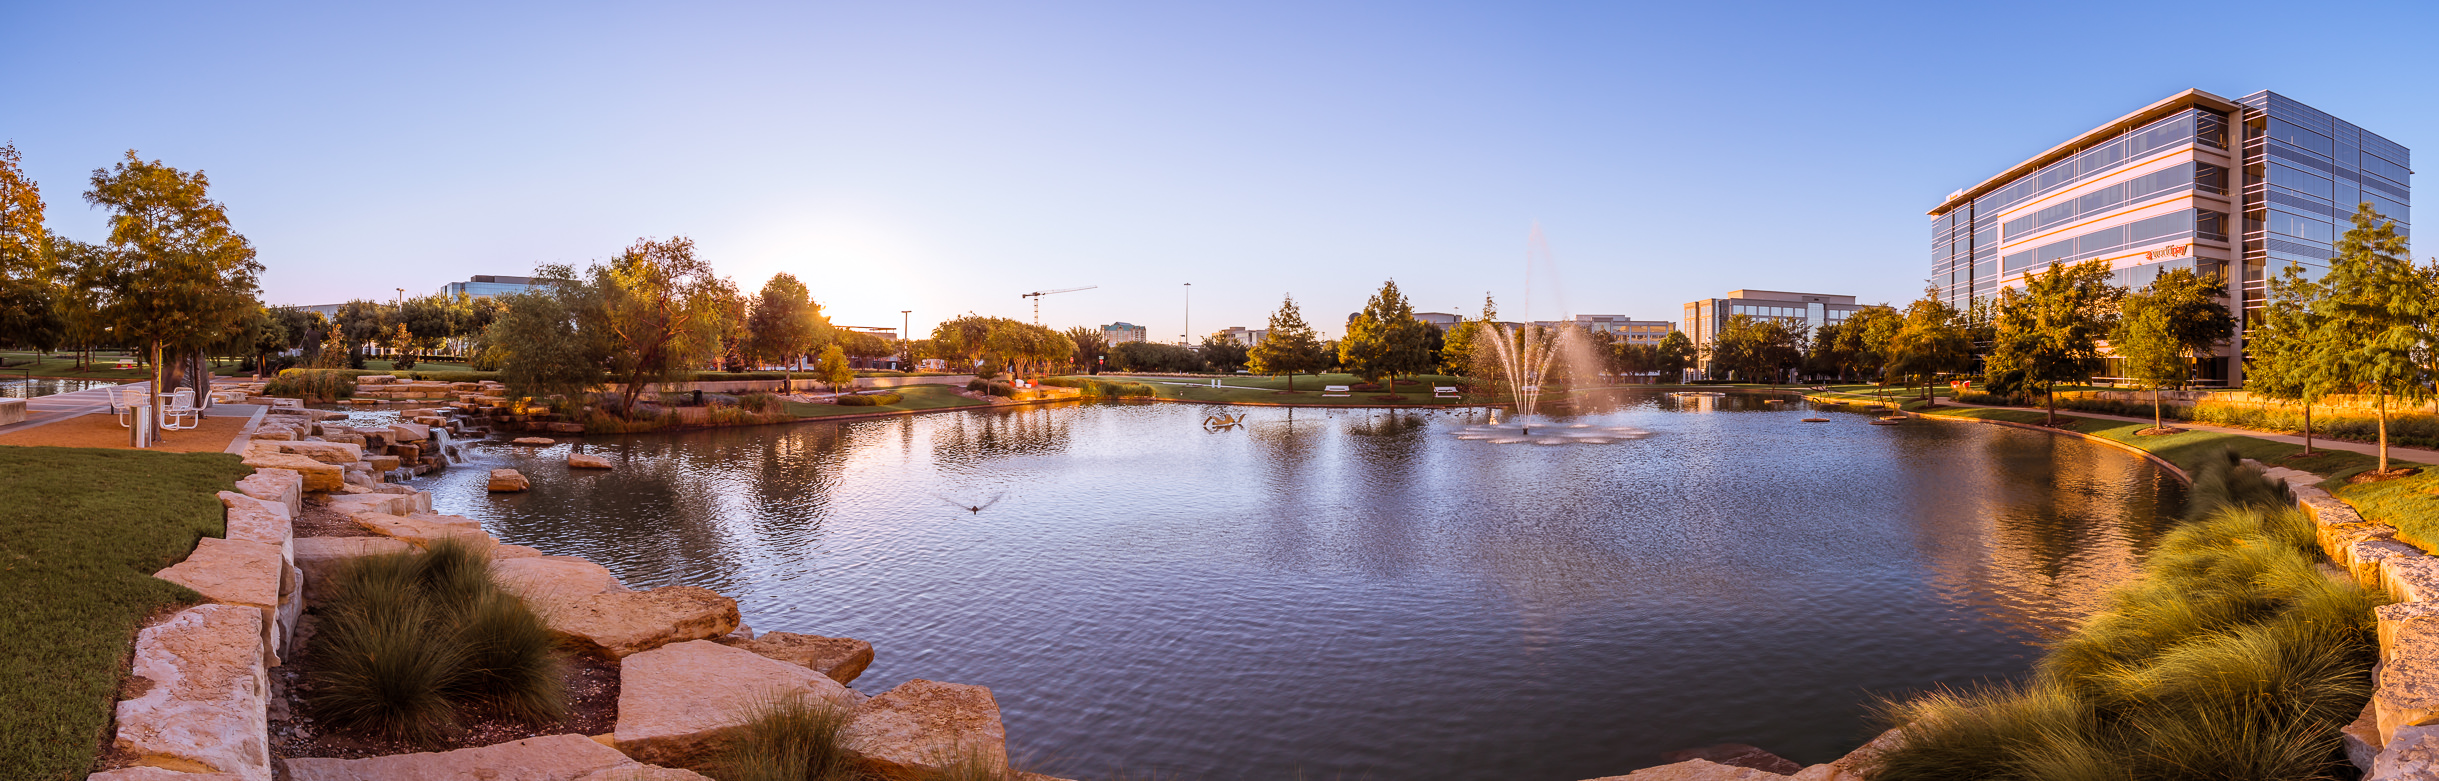 The morning sun illuminates the pond at Frisco, Texas' Hall Office Park.